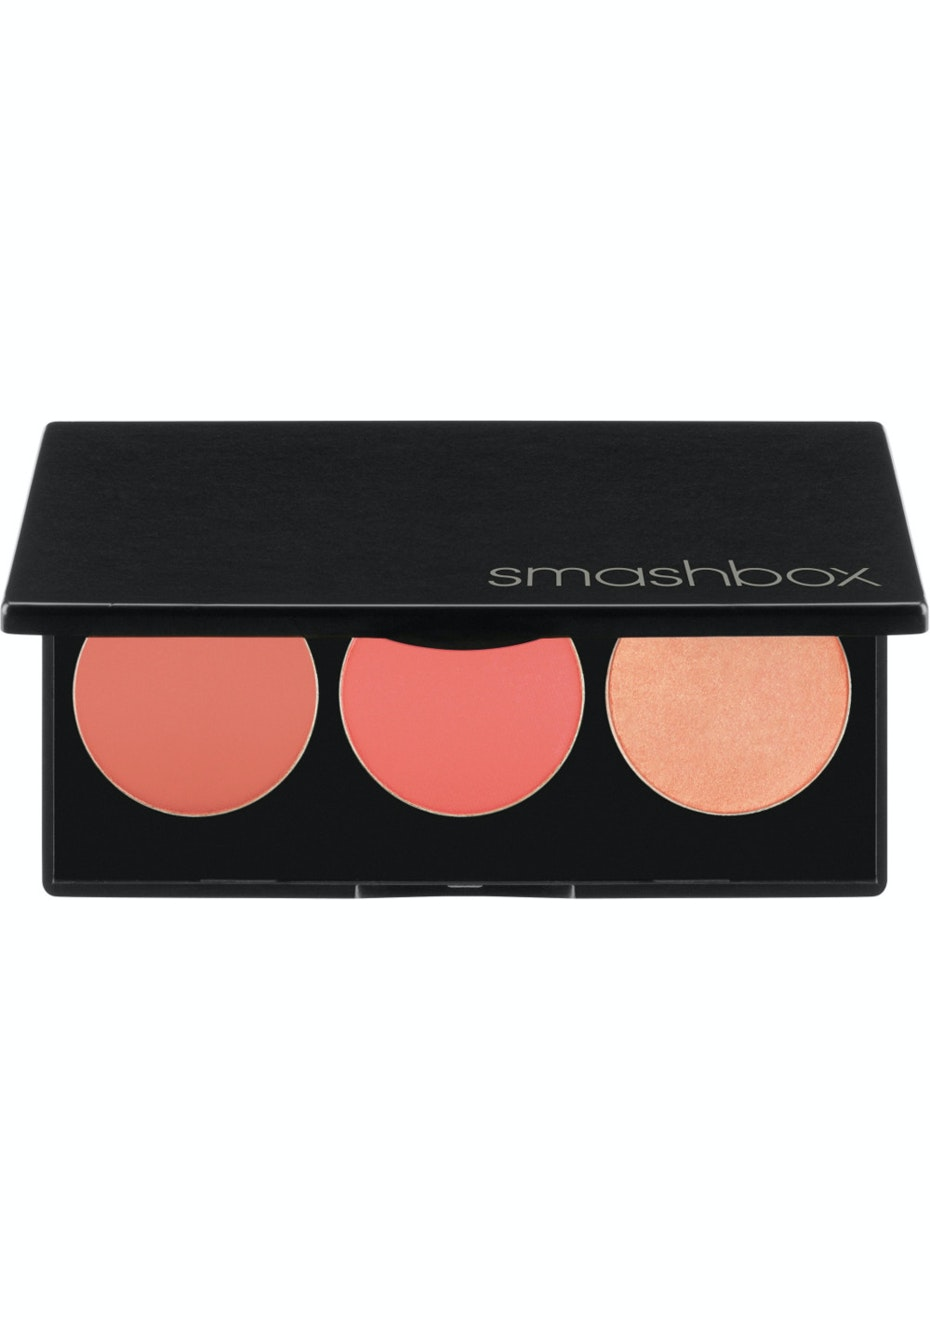 Smashbox - L.A. Lights Blush and Highlight - Culver City Coral